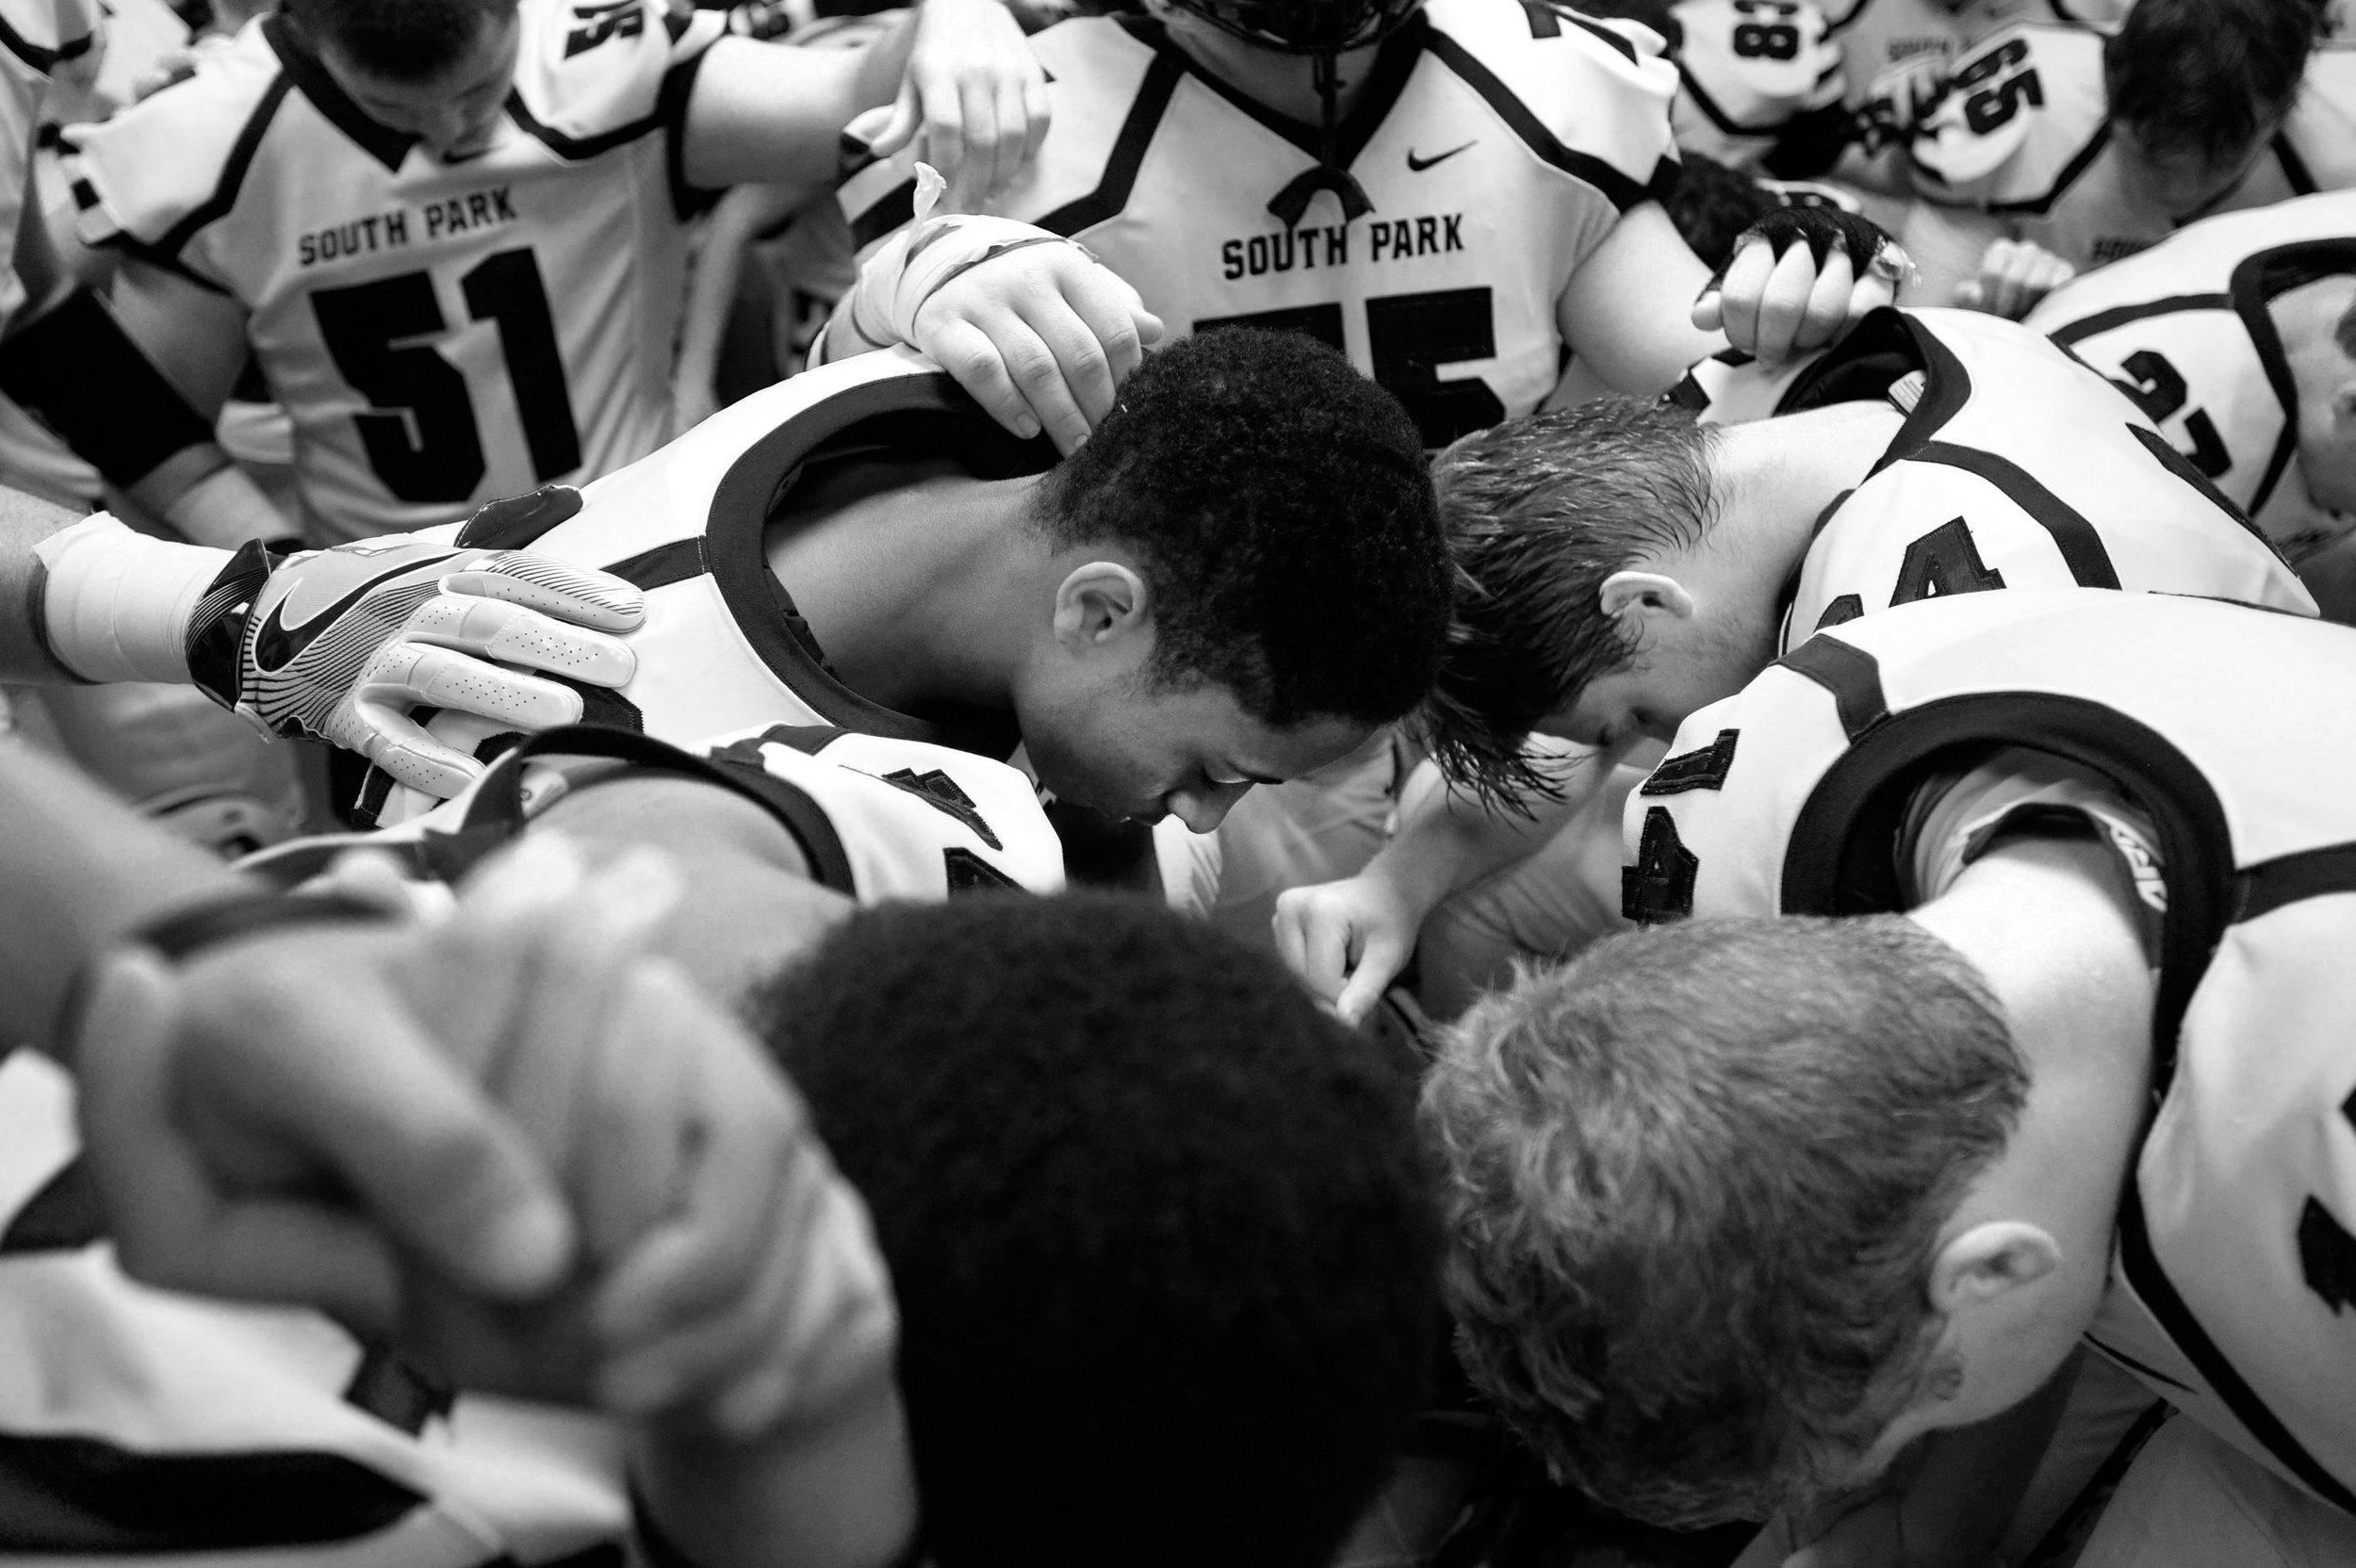 South Park gathers for a prayer before playing Derry on Friday, Sept. 23, 2016 during a football game at Derry Area High School. Derry won 35-23.